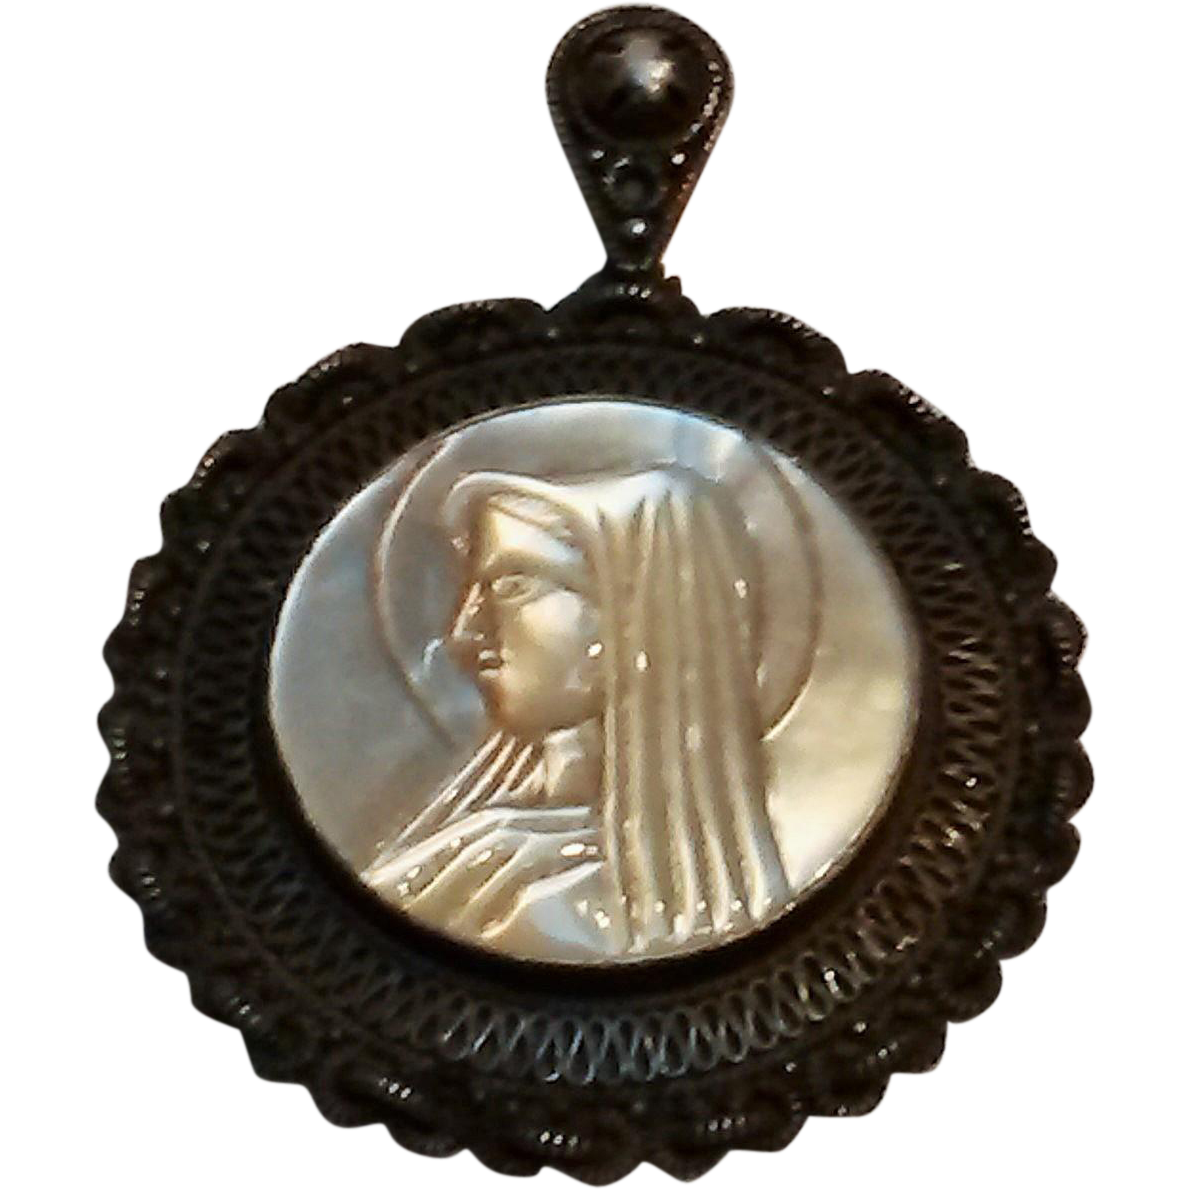 Jerusalem 980 silver mother of pearl cameo pendant Madonna virgin Mary